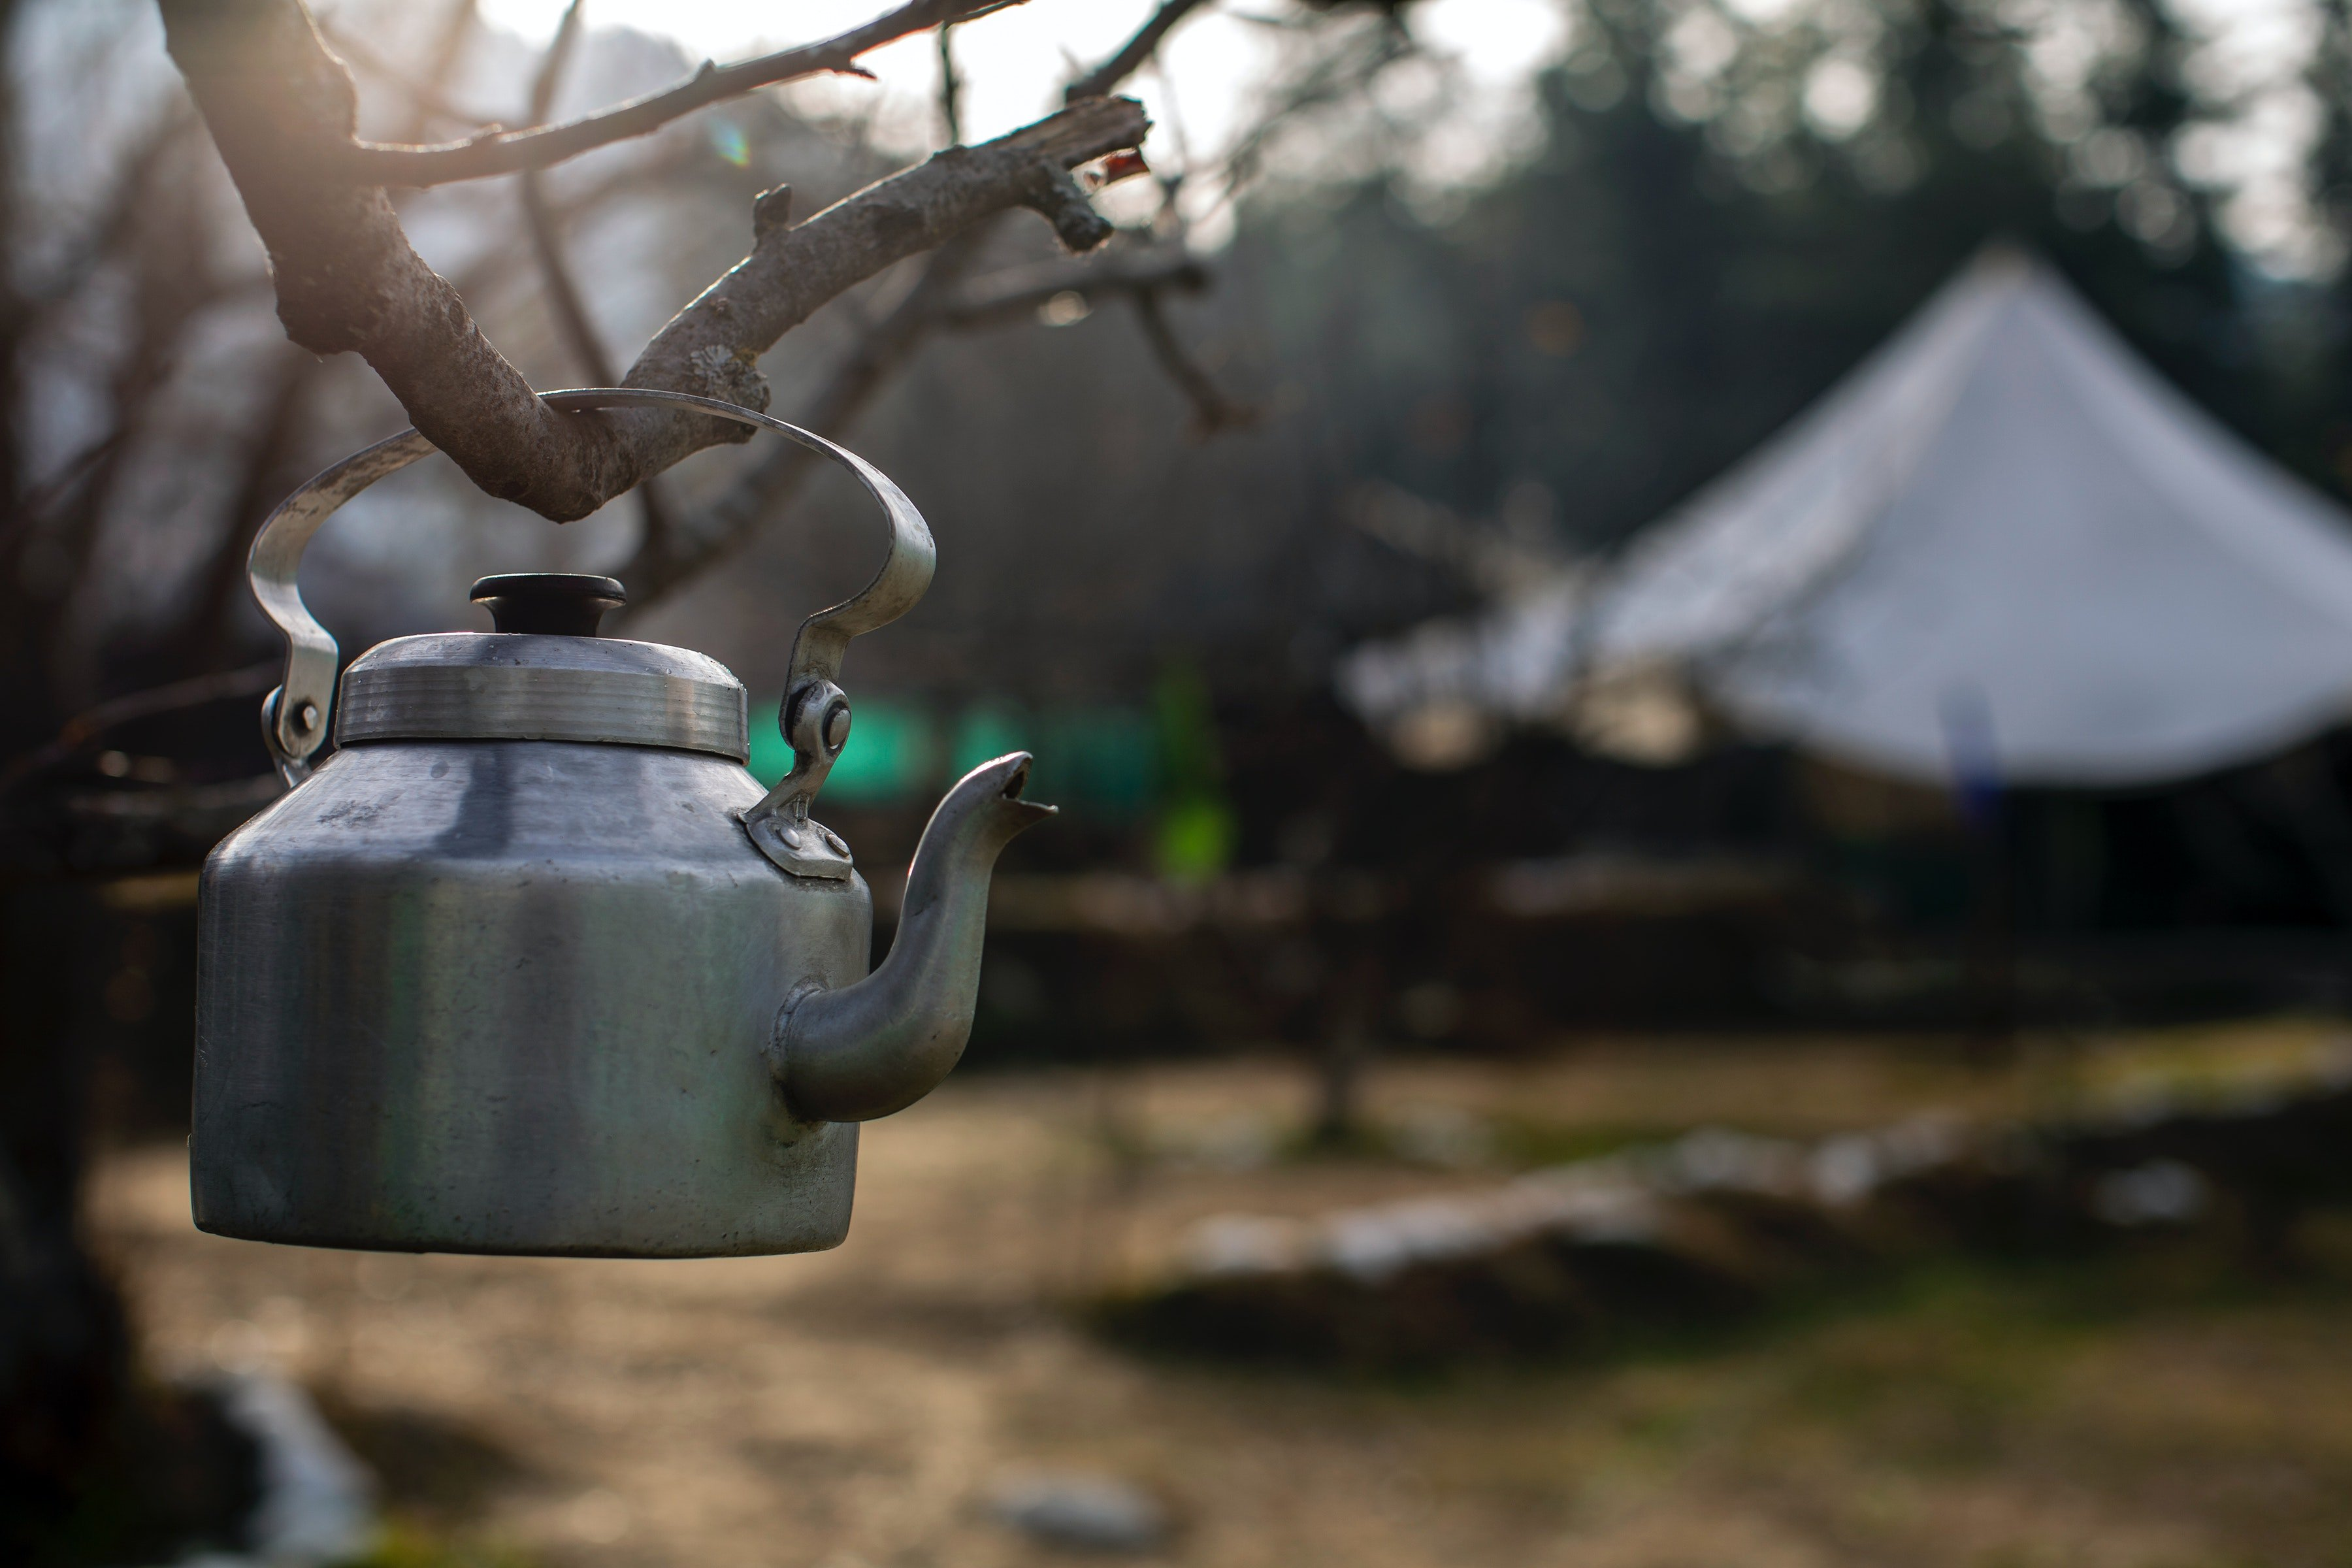 An image of a kettle | Photo: Pexels